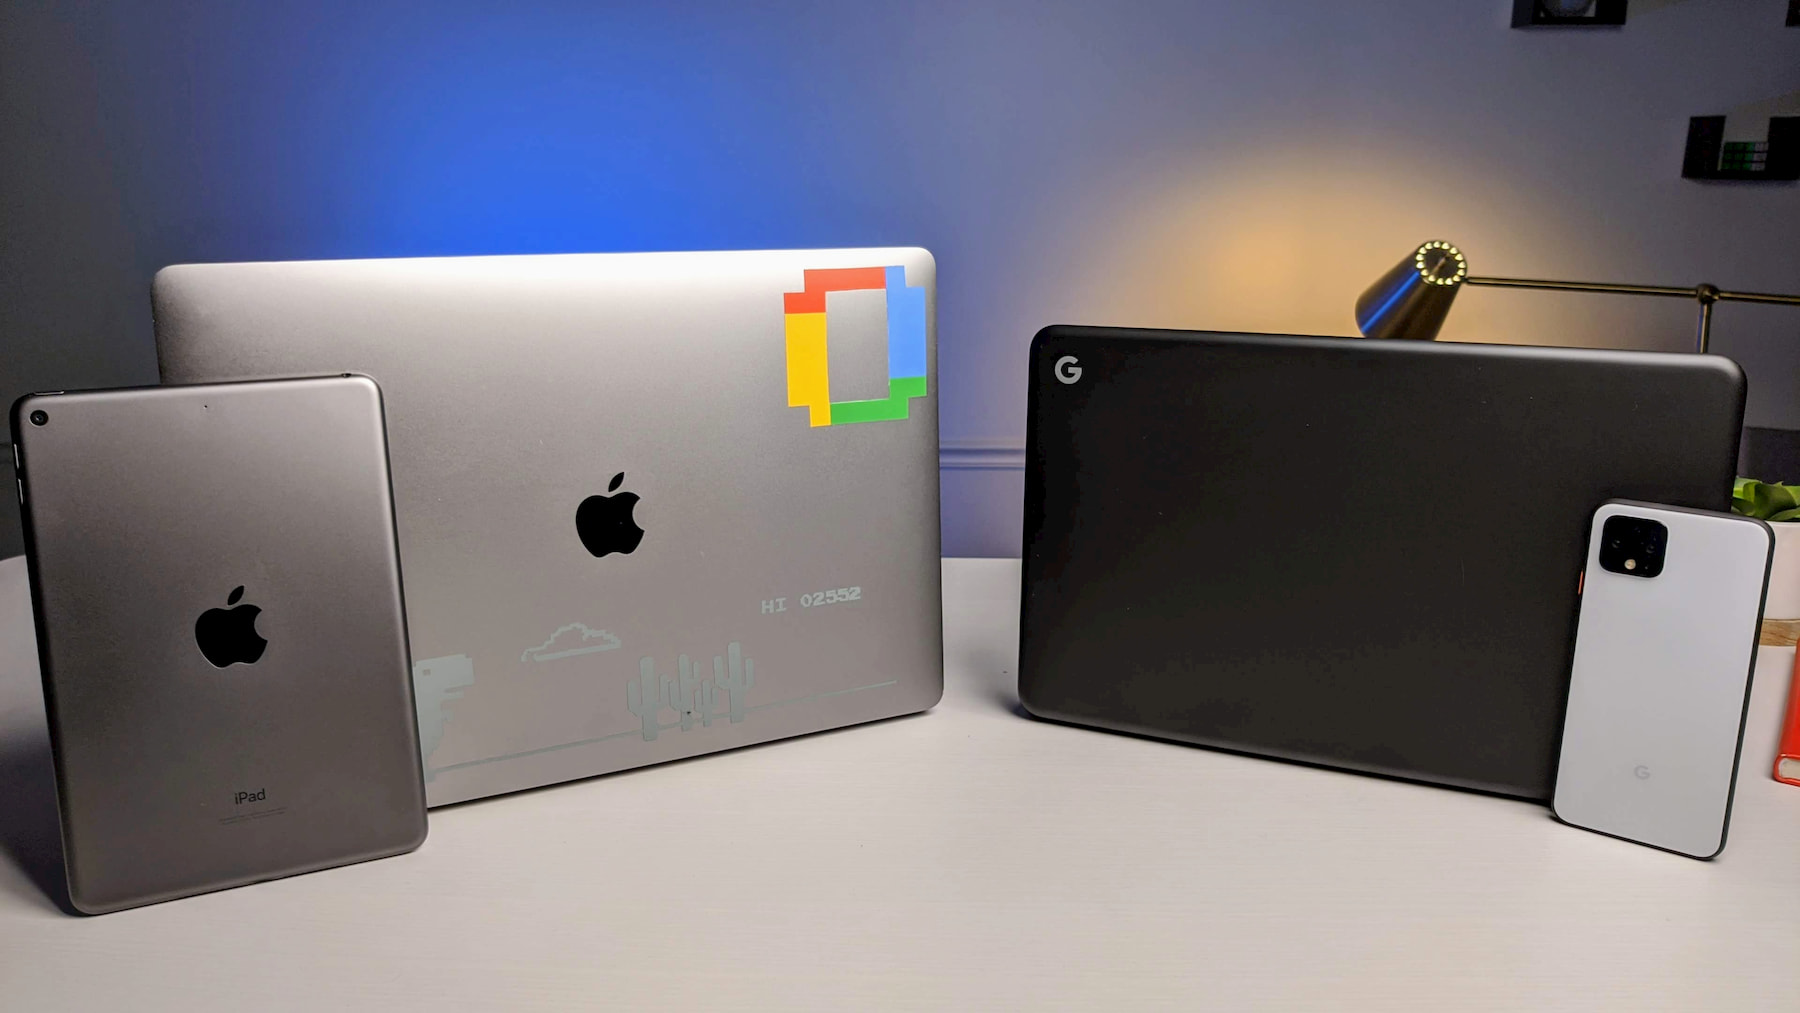 Apple's Macbooks are taking a page out of Google's Chromebook playbook